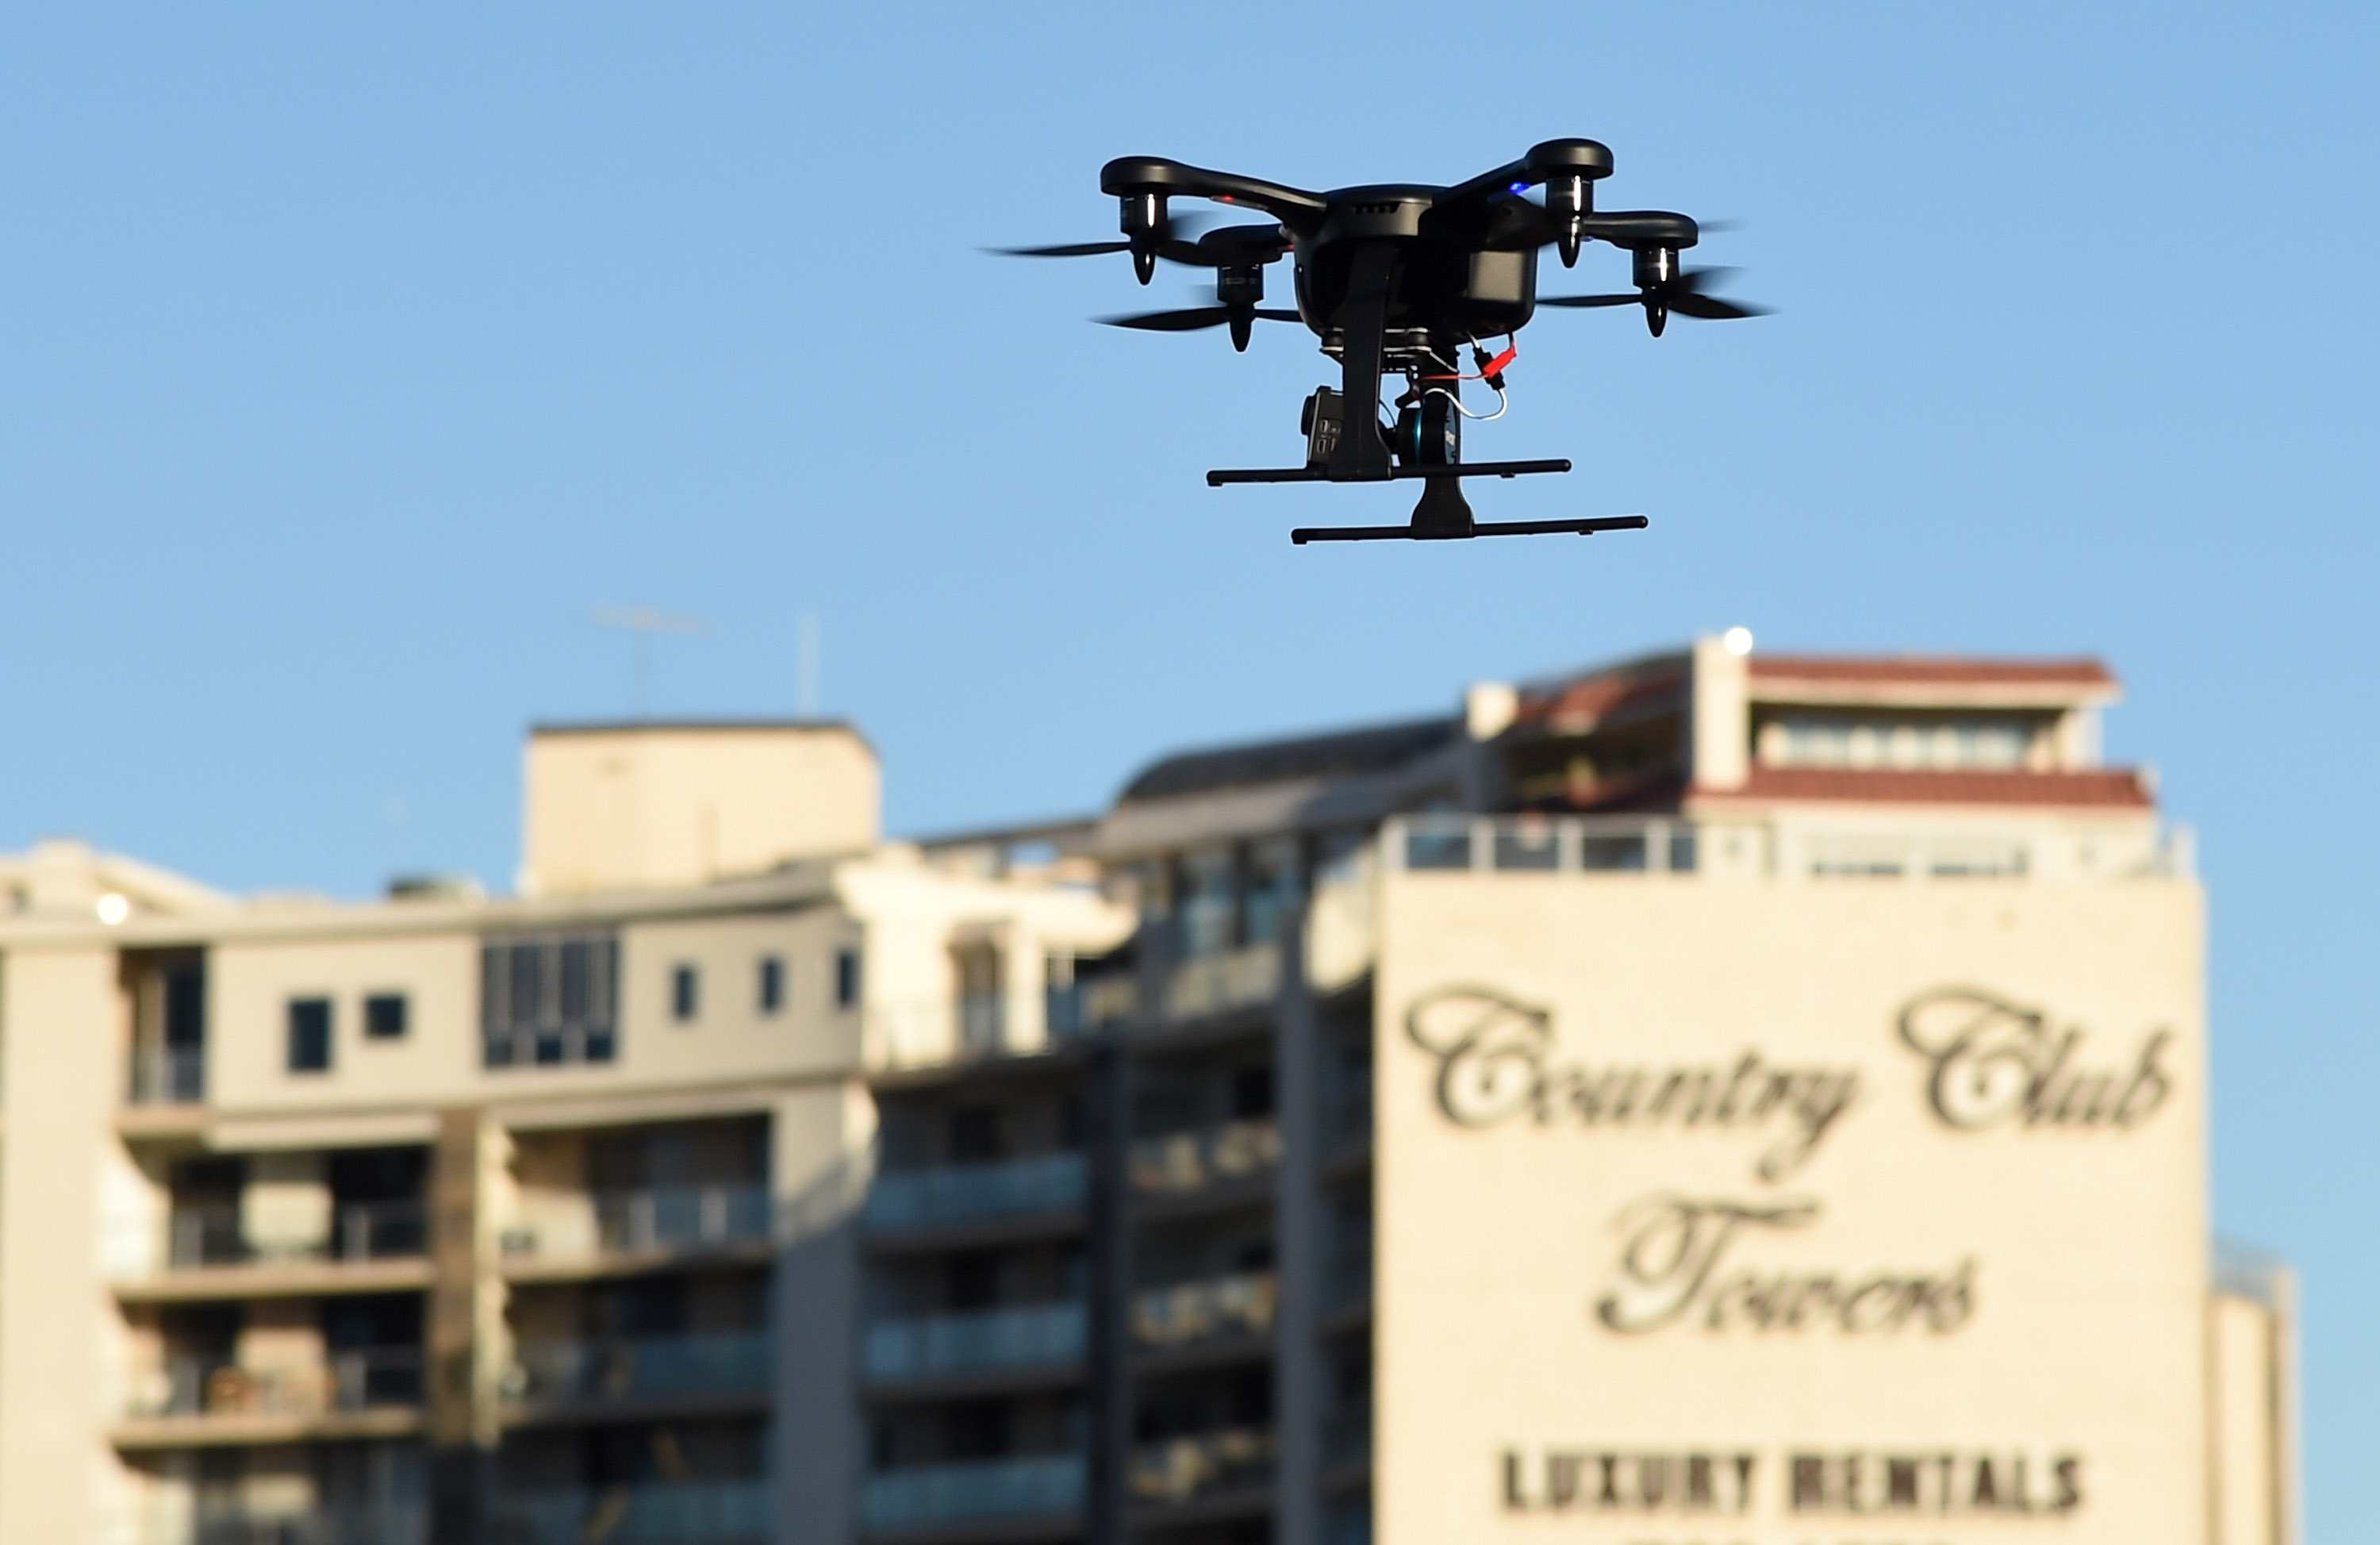 Flying a drone near private property - invasion of privacy